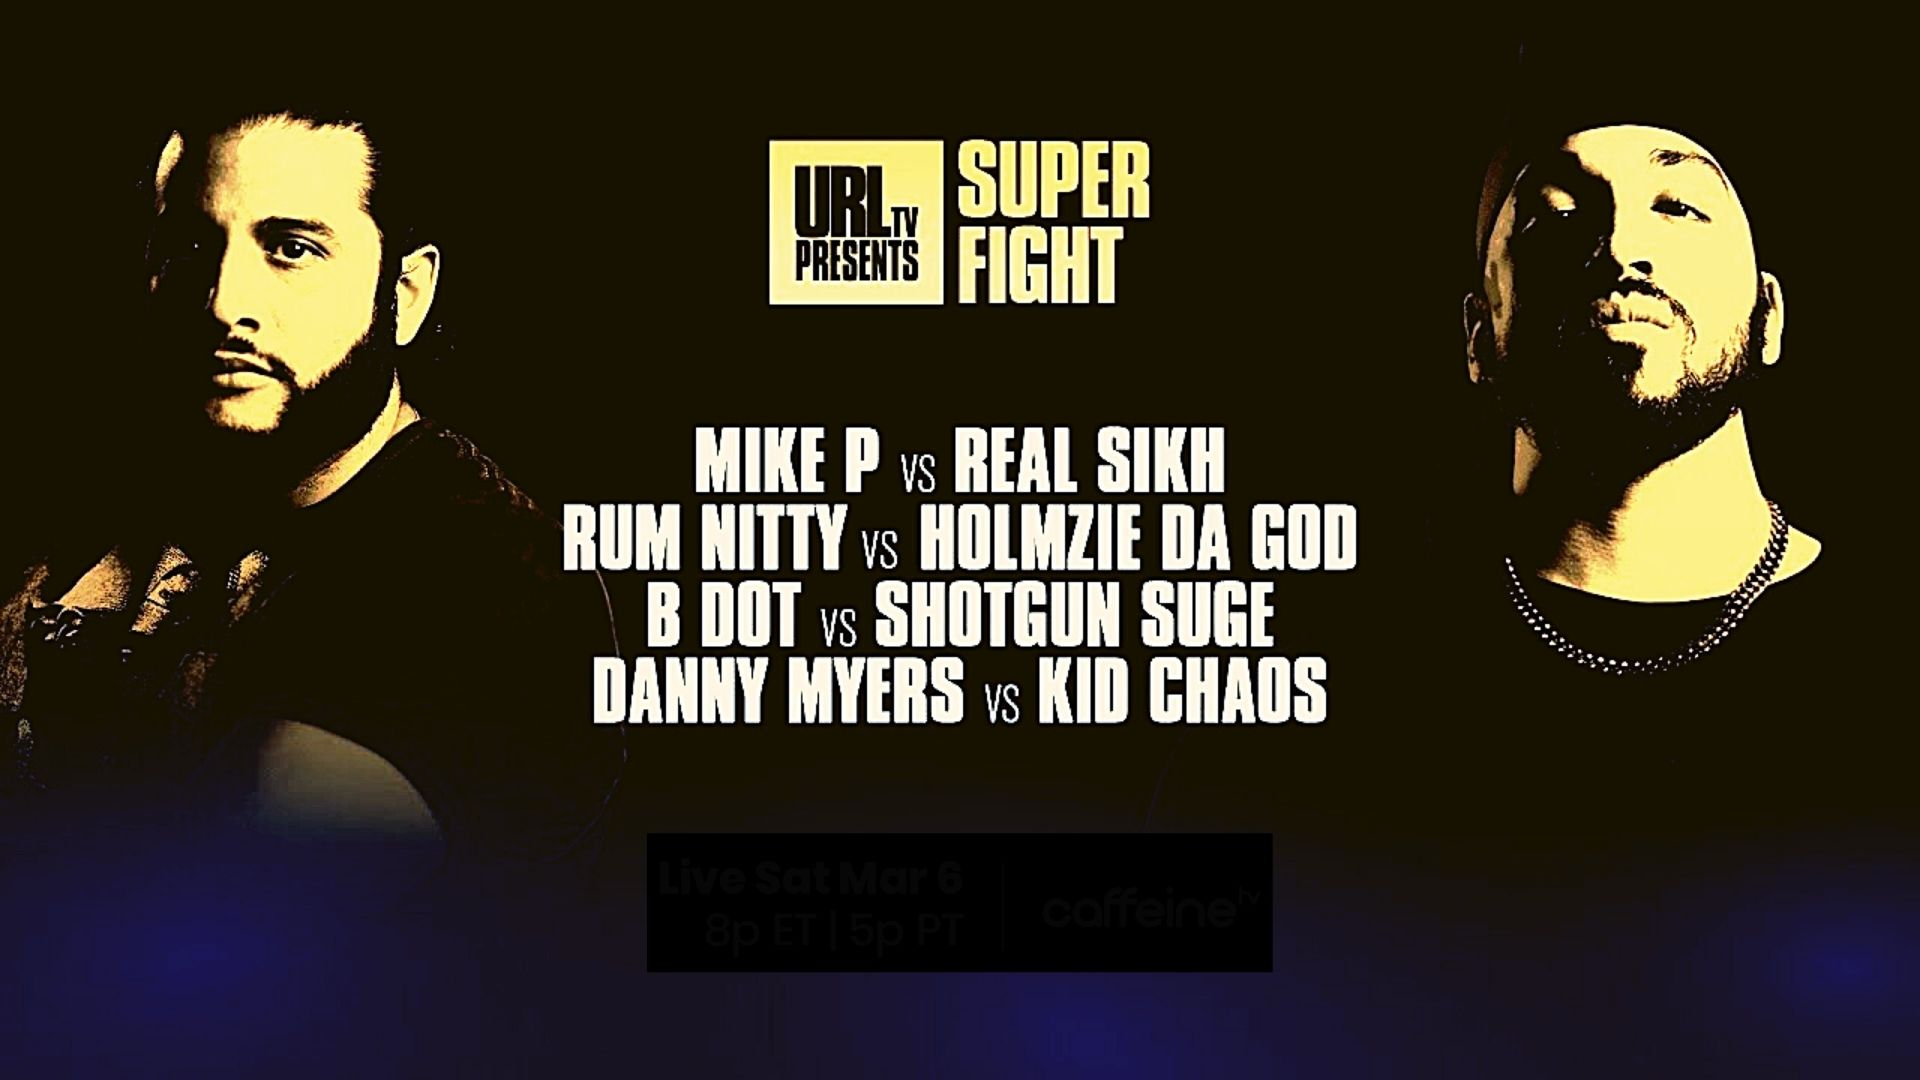 #URLALLSTARS Card Gets A Knock Out With The Super Fight